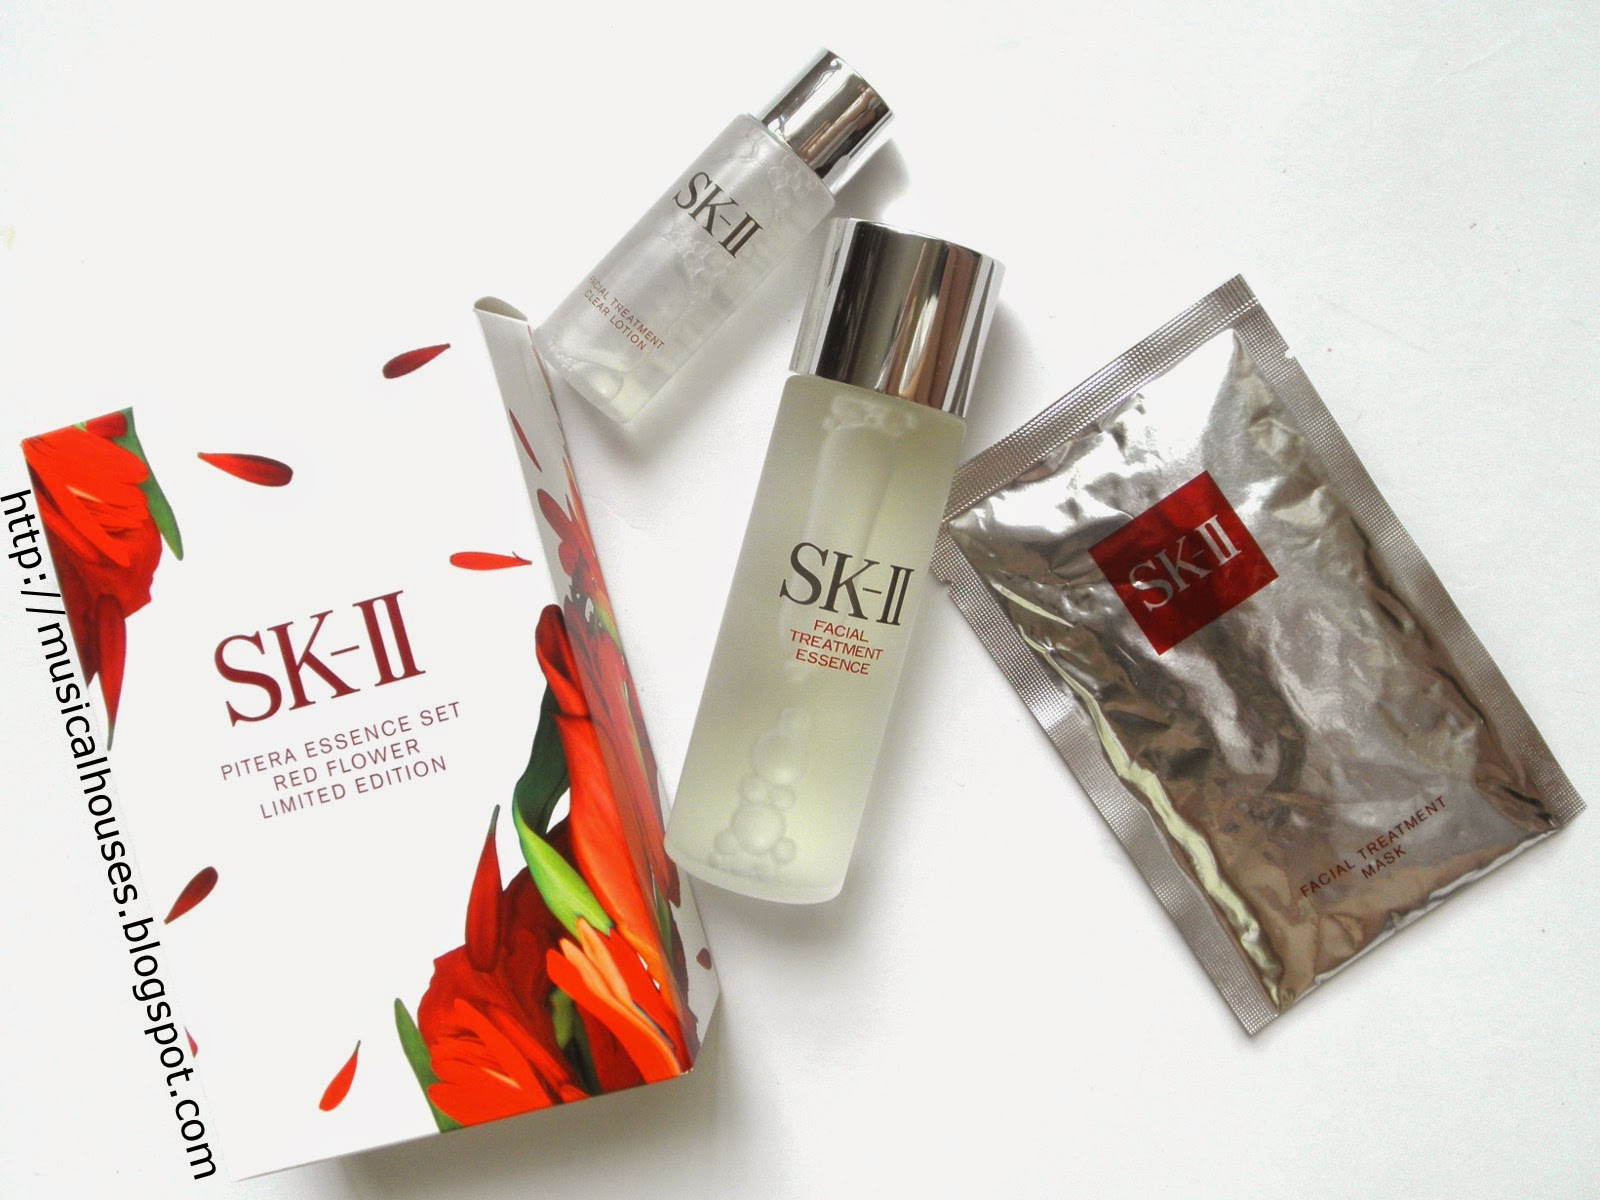 Sk Ii Facial Treatment Essence Dupe Part 1 10 Possible Dupes With Clear Lotion 30ml Skii Has Something Of A Cult Following Particularly Its